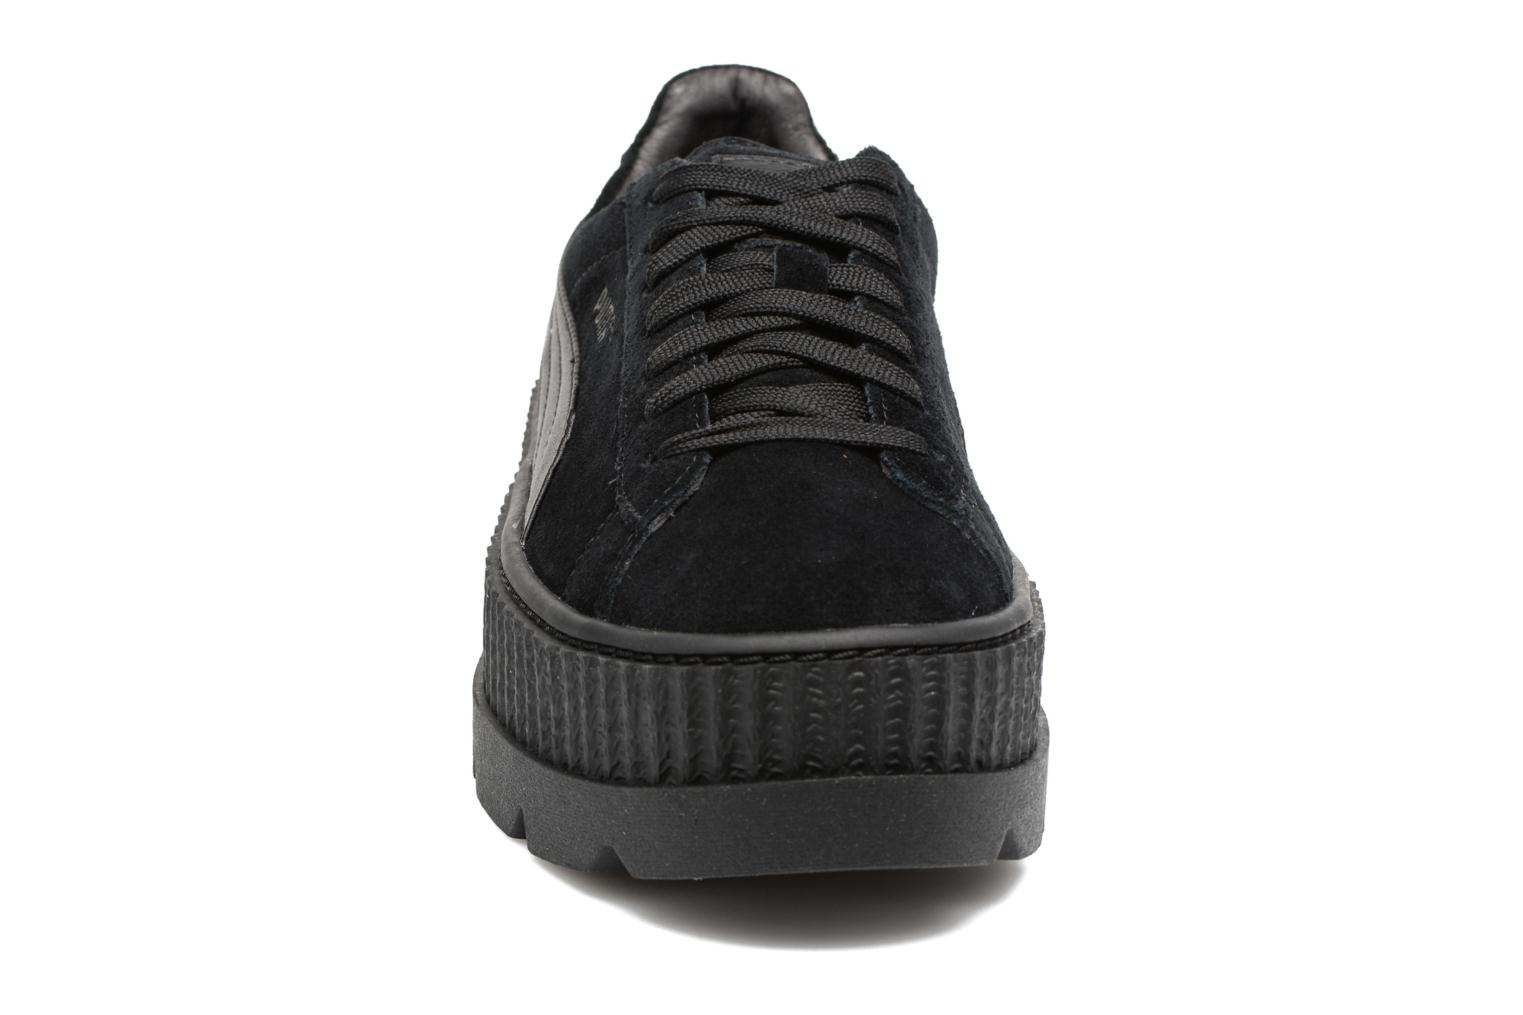 Baskets Puma Fenty Wn Cleated Creeper Noir vue portées chaussures